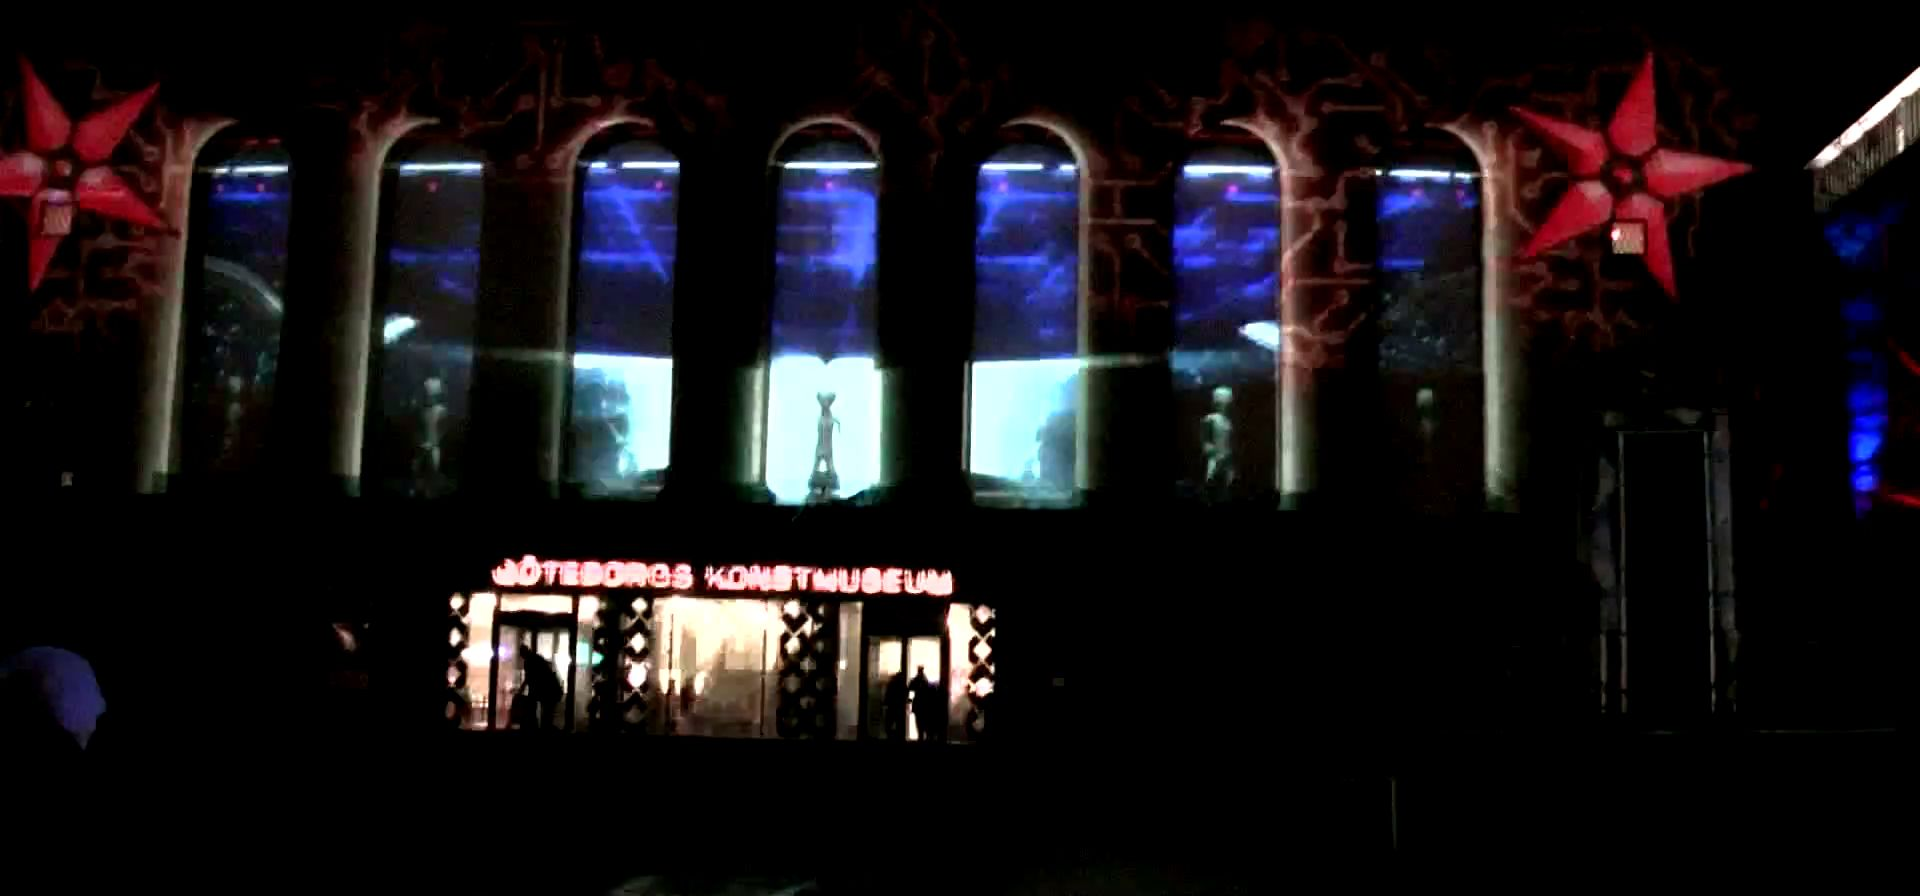 Gothenburg Christmas Light show 2011